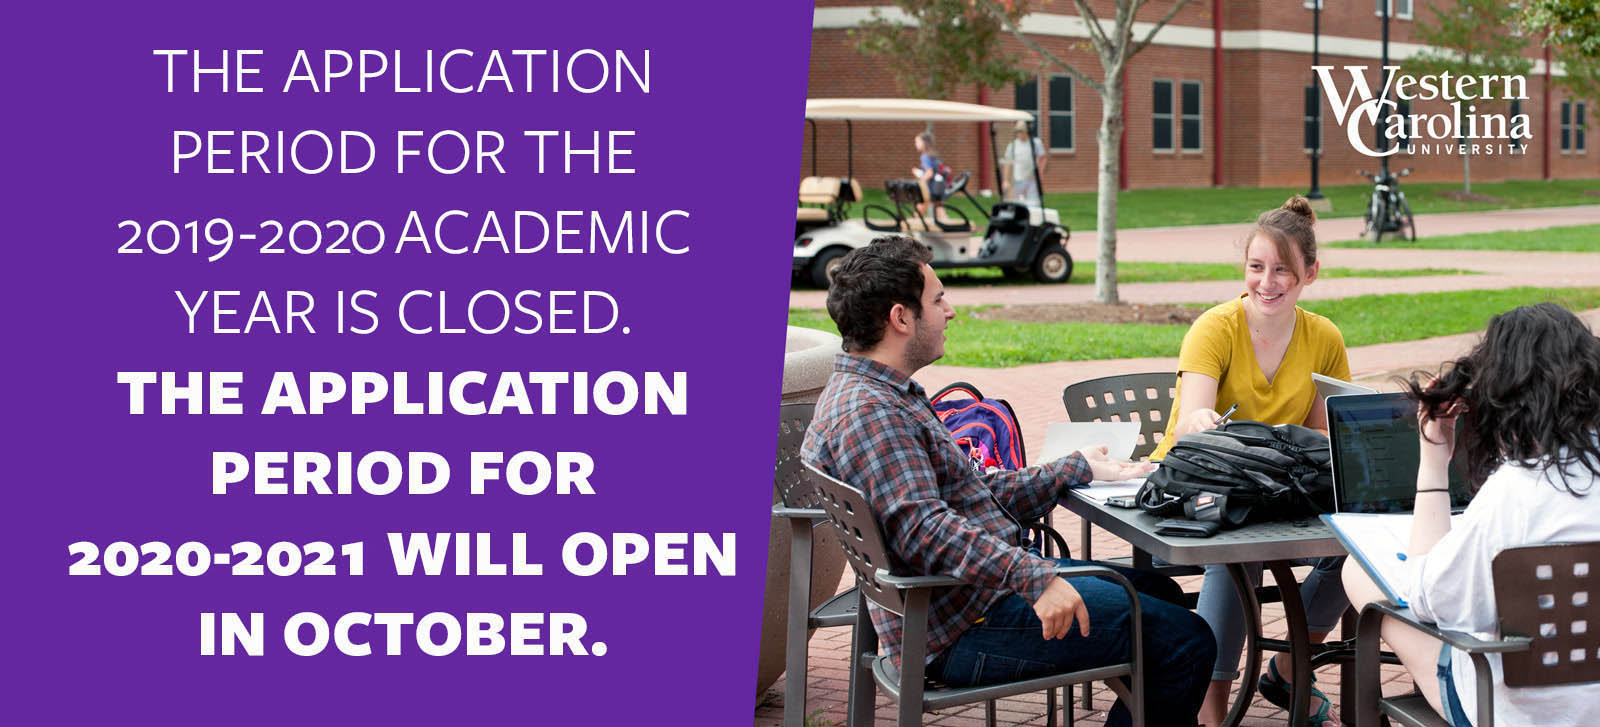 The application period for the 2019-2020 academic year is closed. The application period for 2020-2021 will open in october.